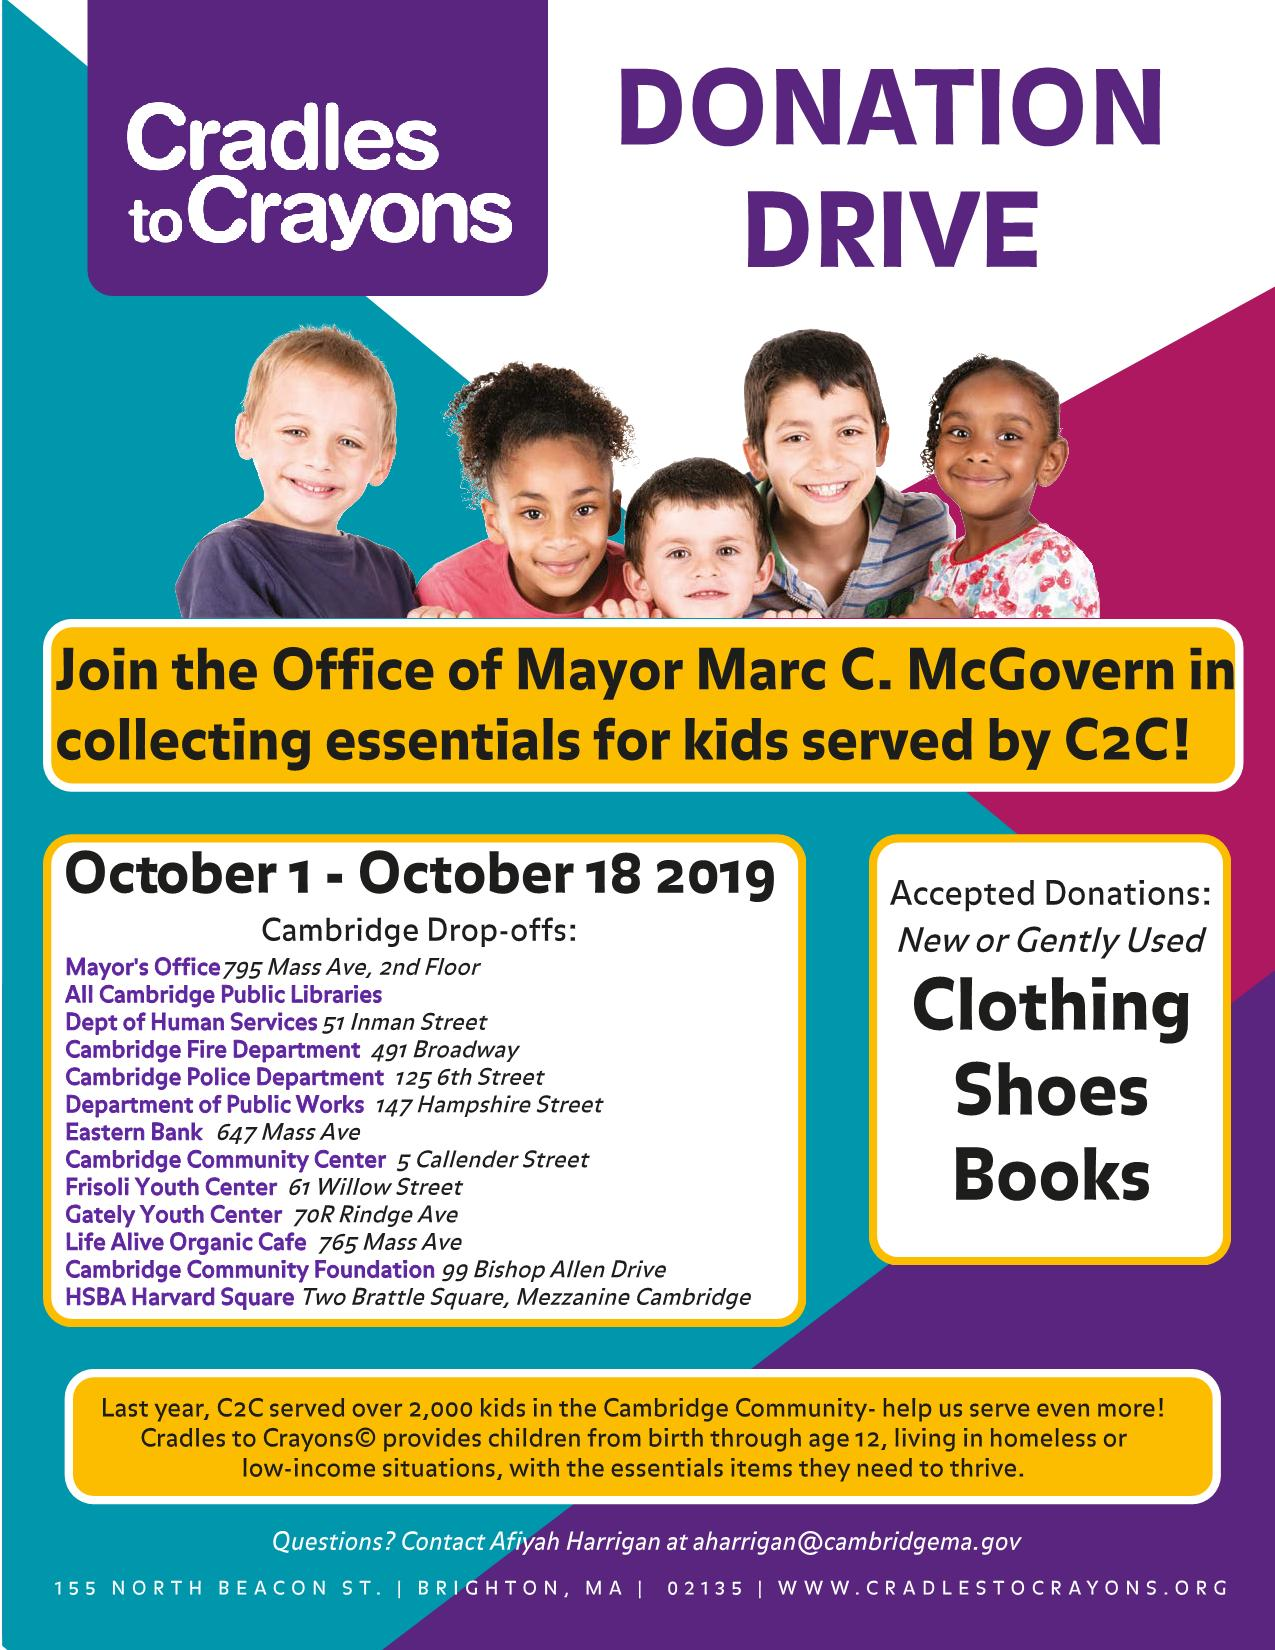 Image of Cradles to Crayons Donation Drive event